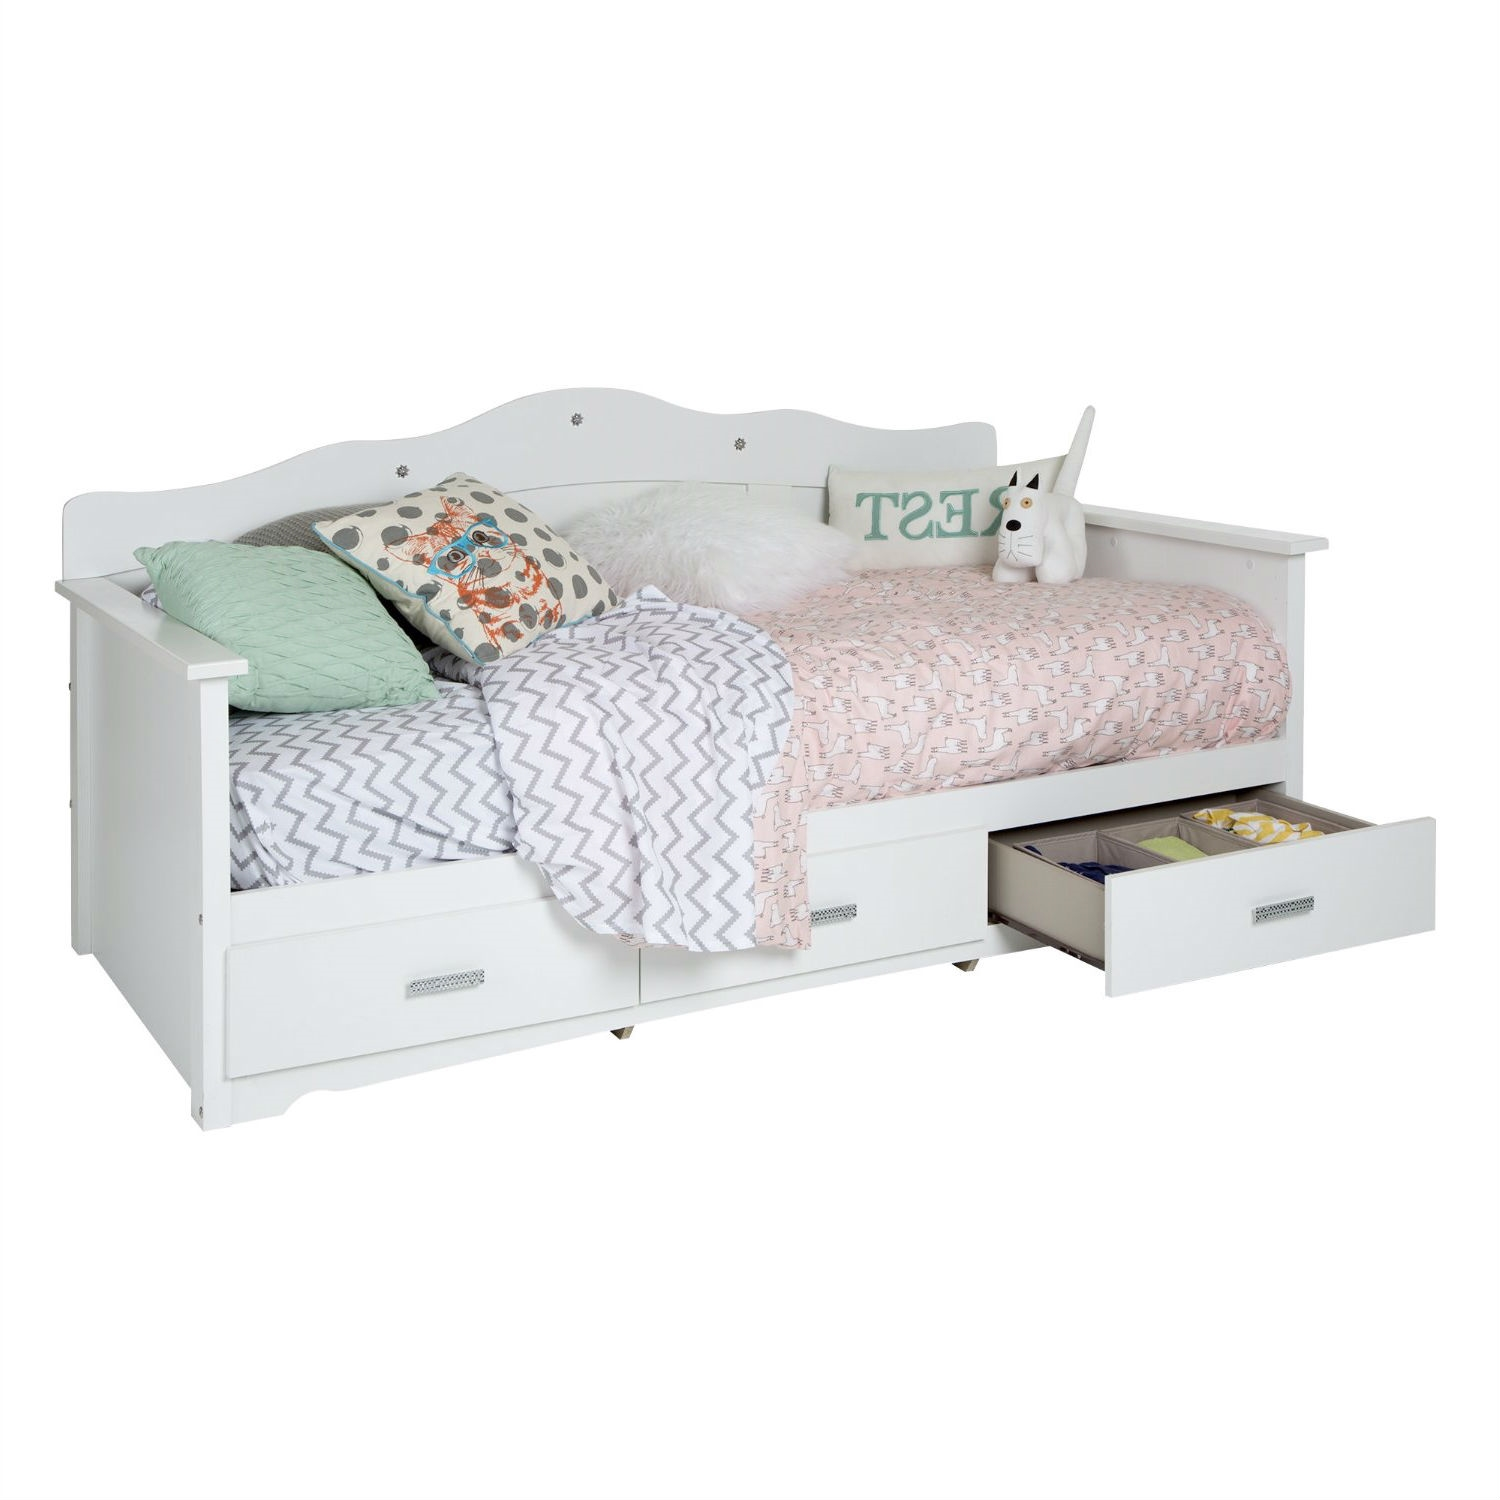 - Twin Size Kids Bed Daybed In White Wood Finish With 3 Storage